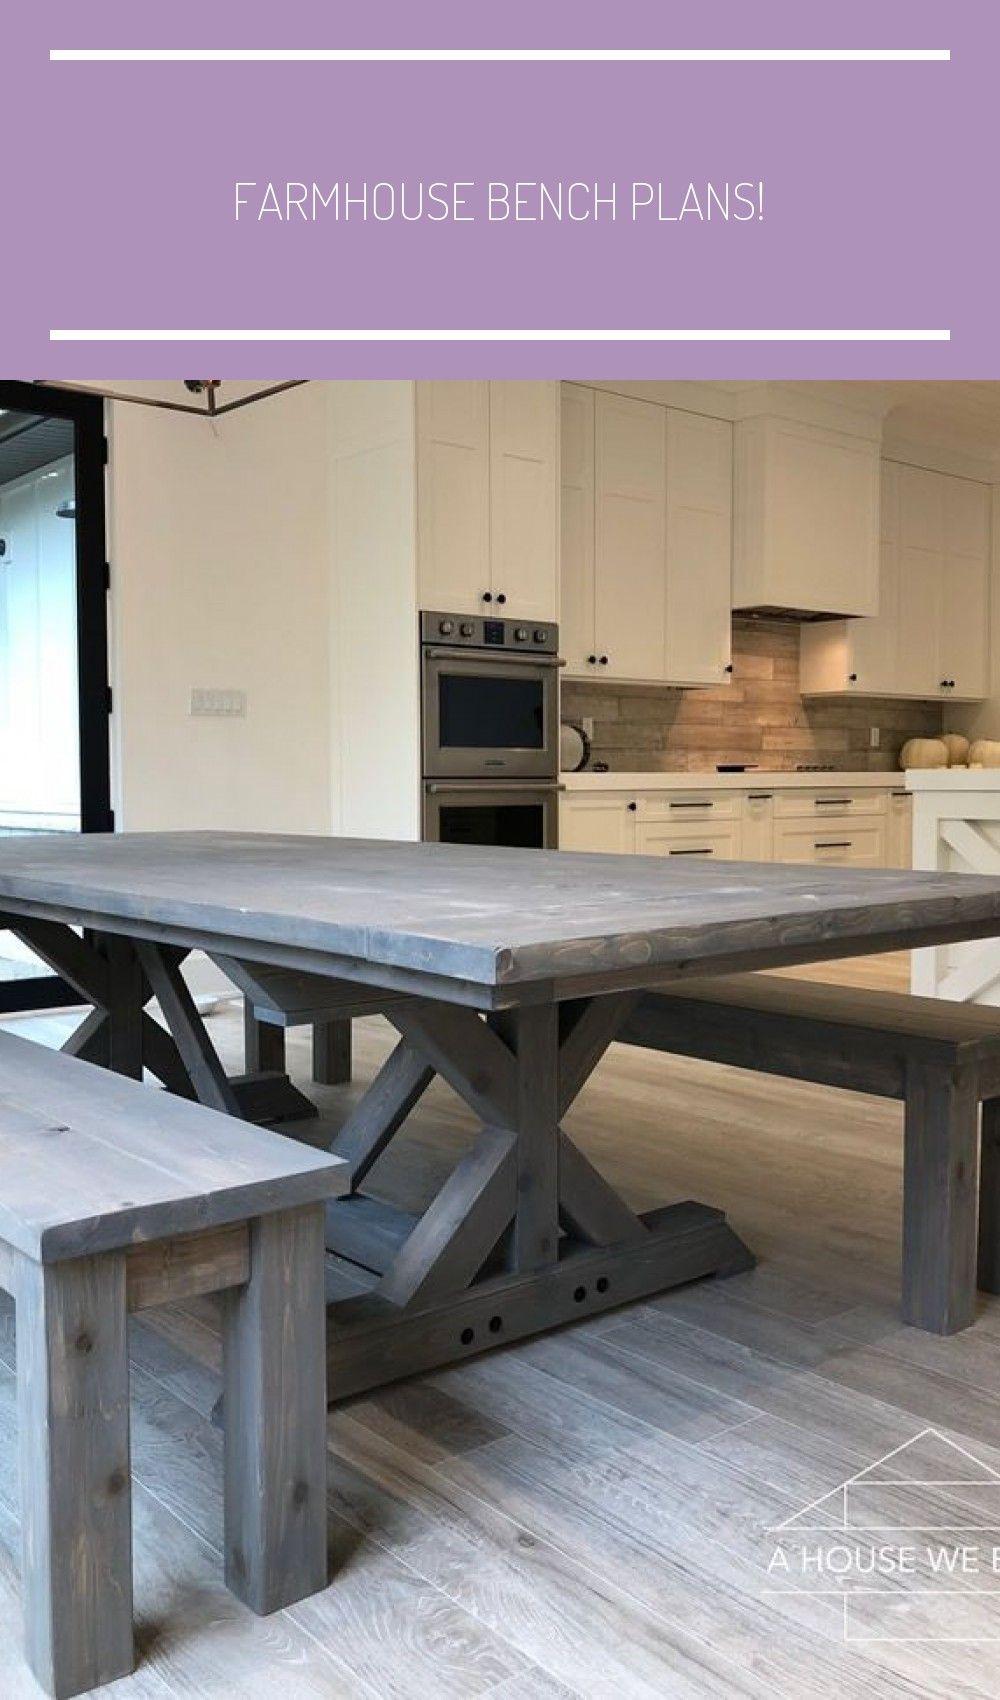 How To Build A Farmhouse Table And Benches Farmhouse Table Plans In 2020 Farmhouse Bench Plans Build A Farmhouse Table Farmhouse Bench